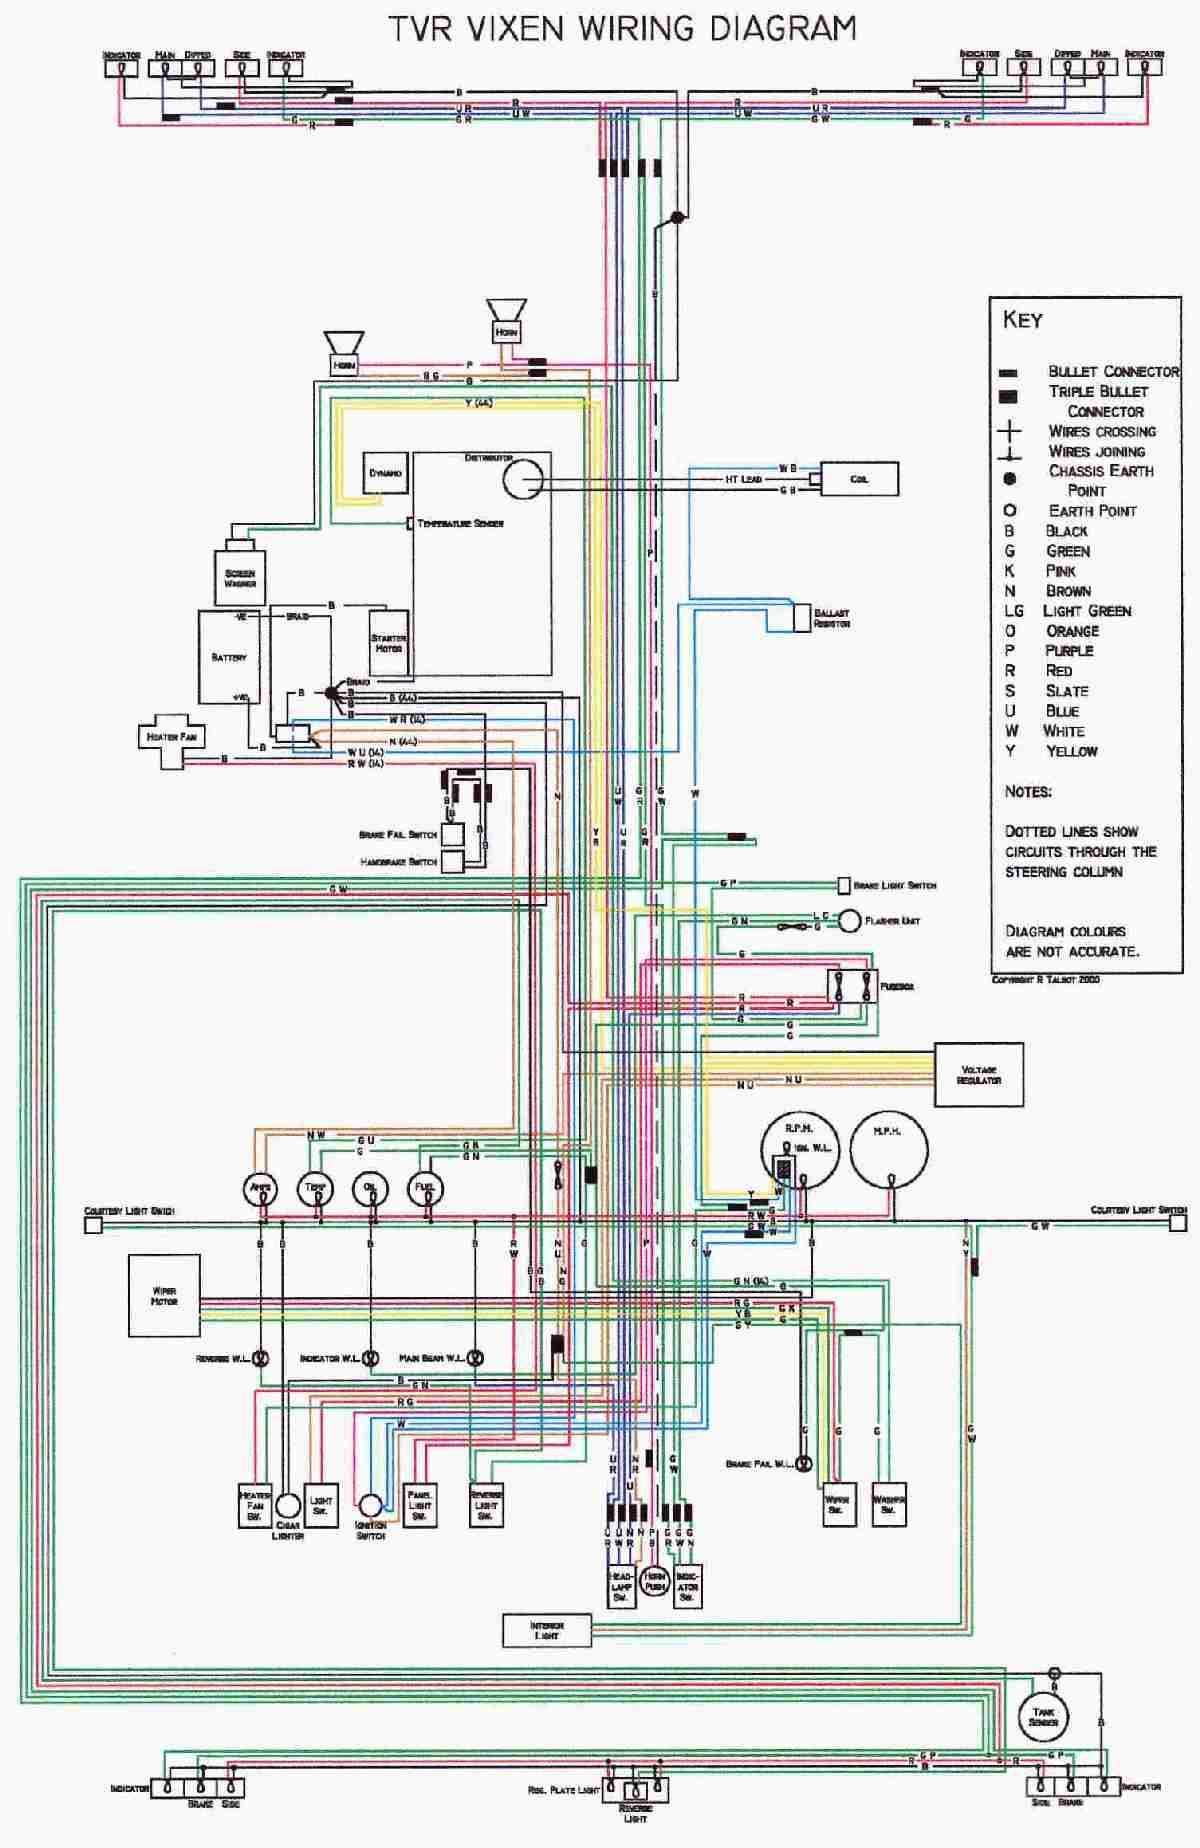 1999 suzuki gsxr 750 wiring diagram vw passat awesome image